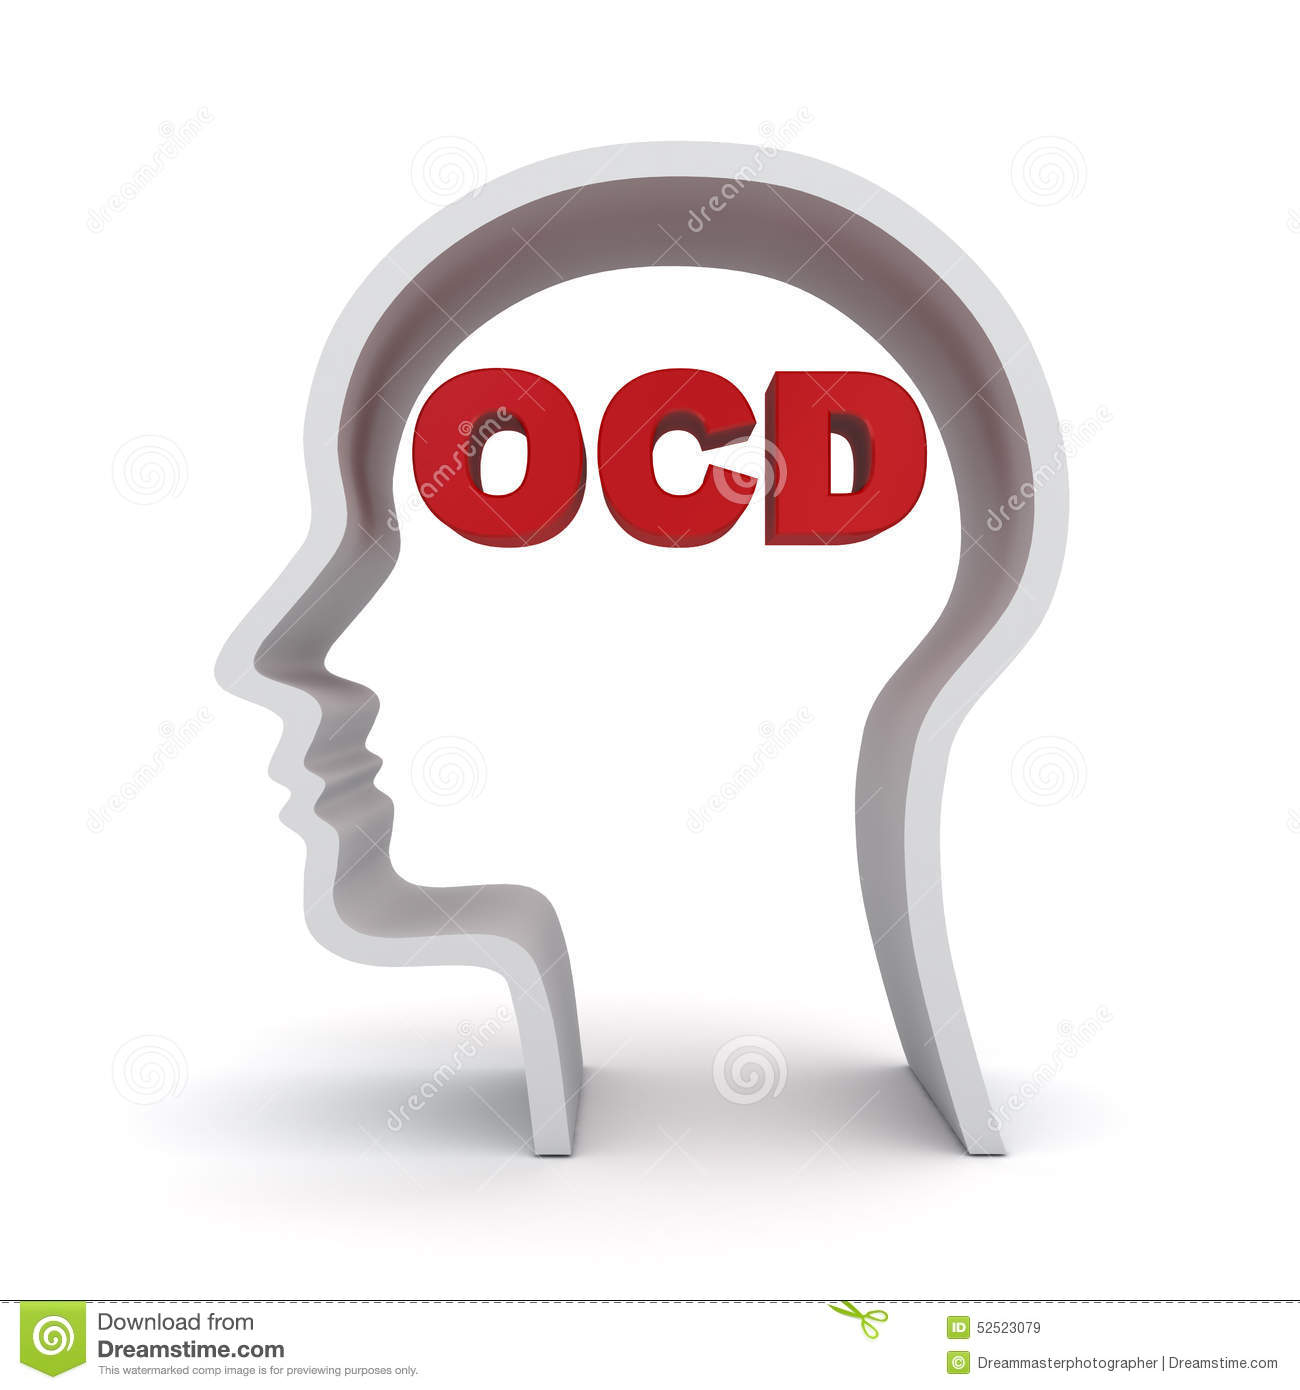 Ocd Stock Illustrations.